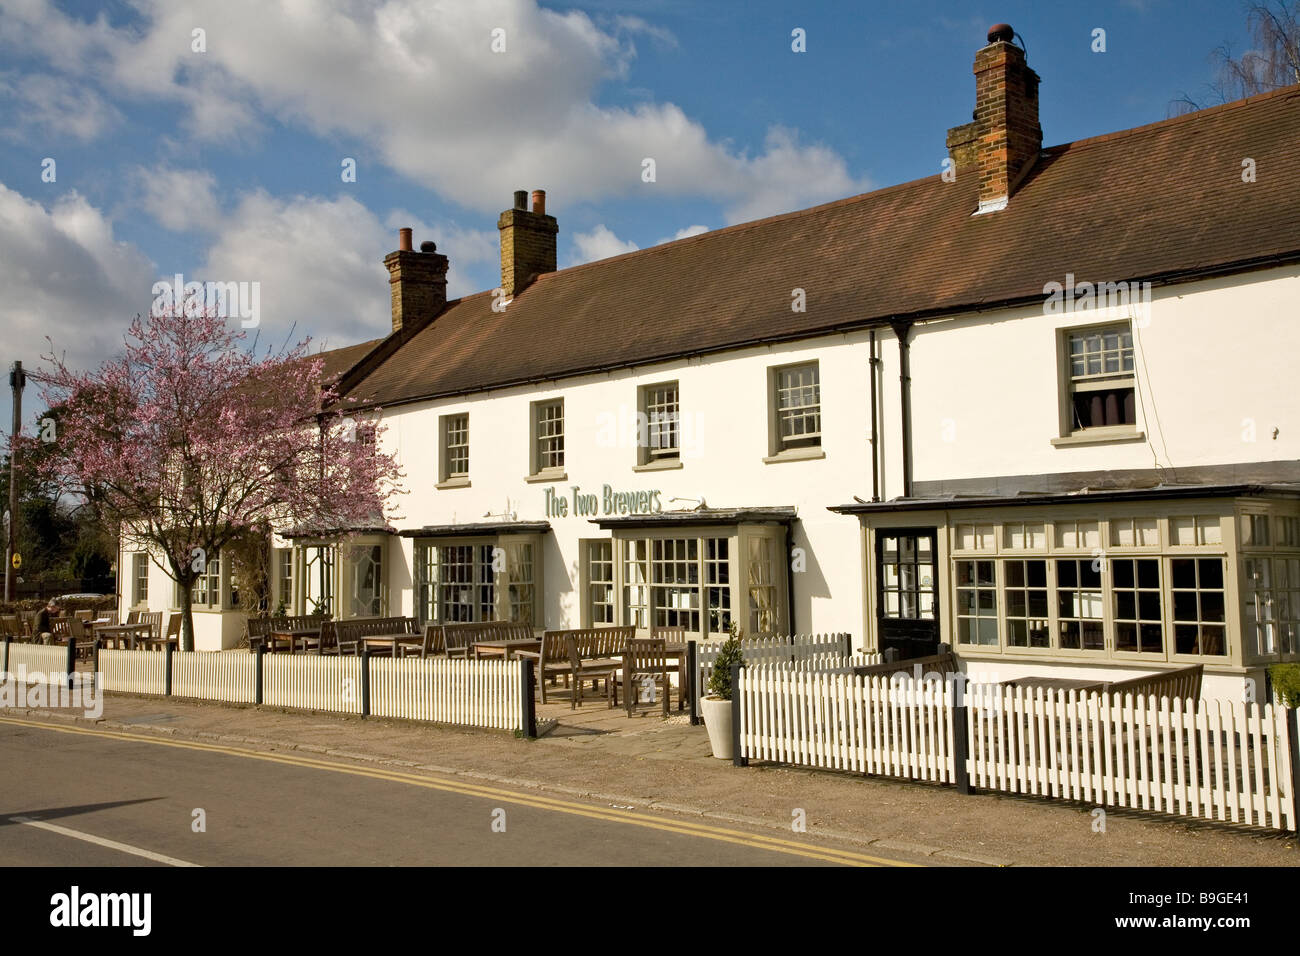 The Two Brewers Pub at Chipperfield Herts village pubs village green and pub, public house traditional - Stock Image